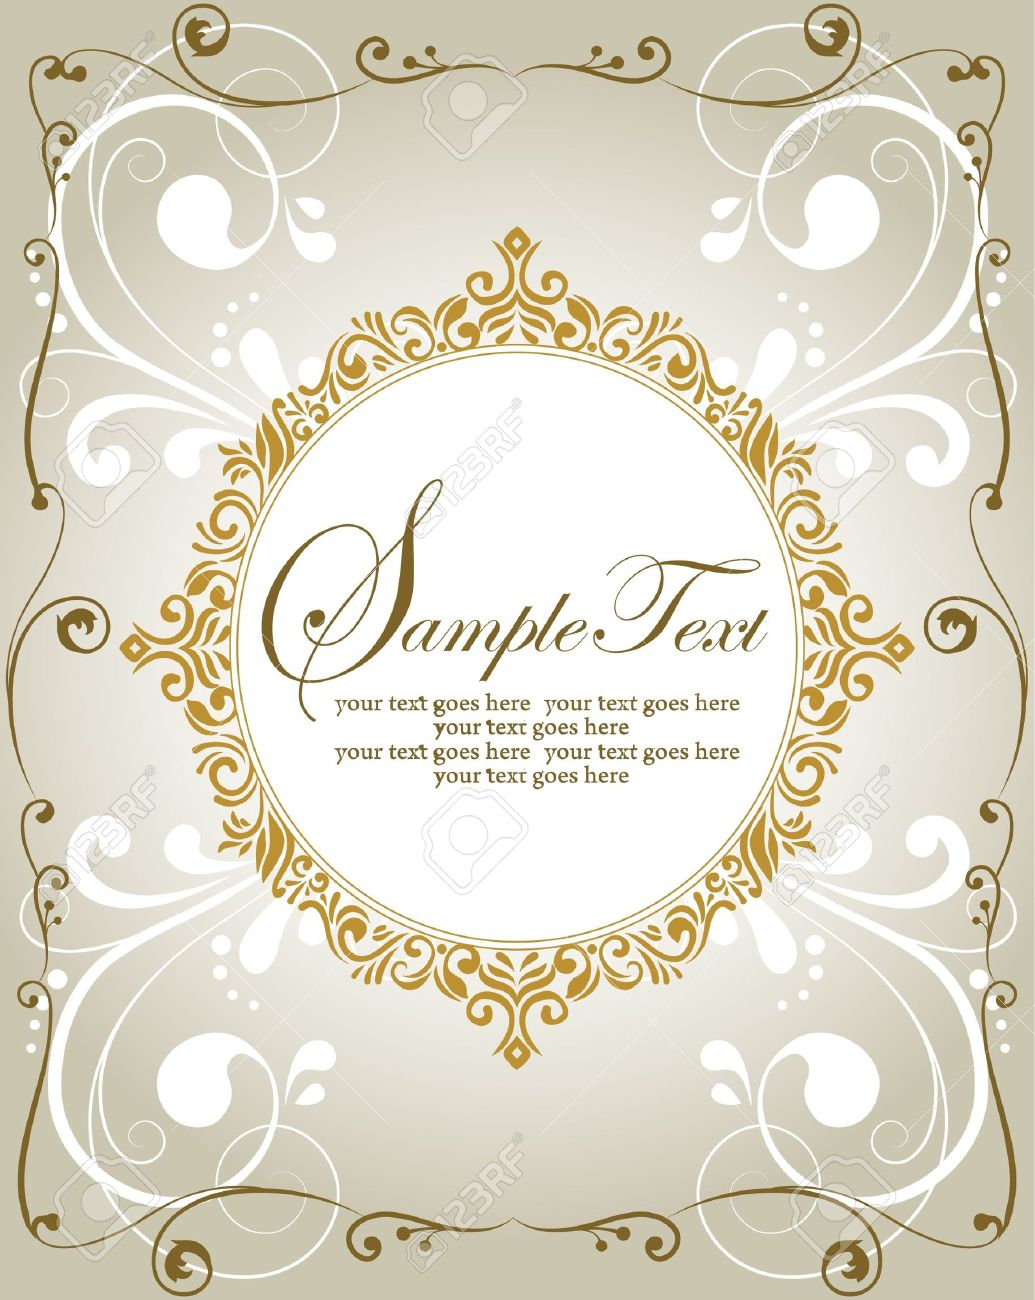 template frame design for greeting card or invitation royalty template frame design for greeting card or invitation stock vector 18066731